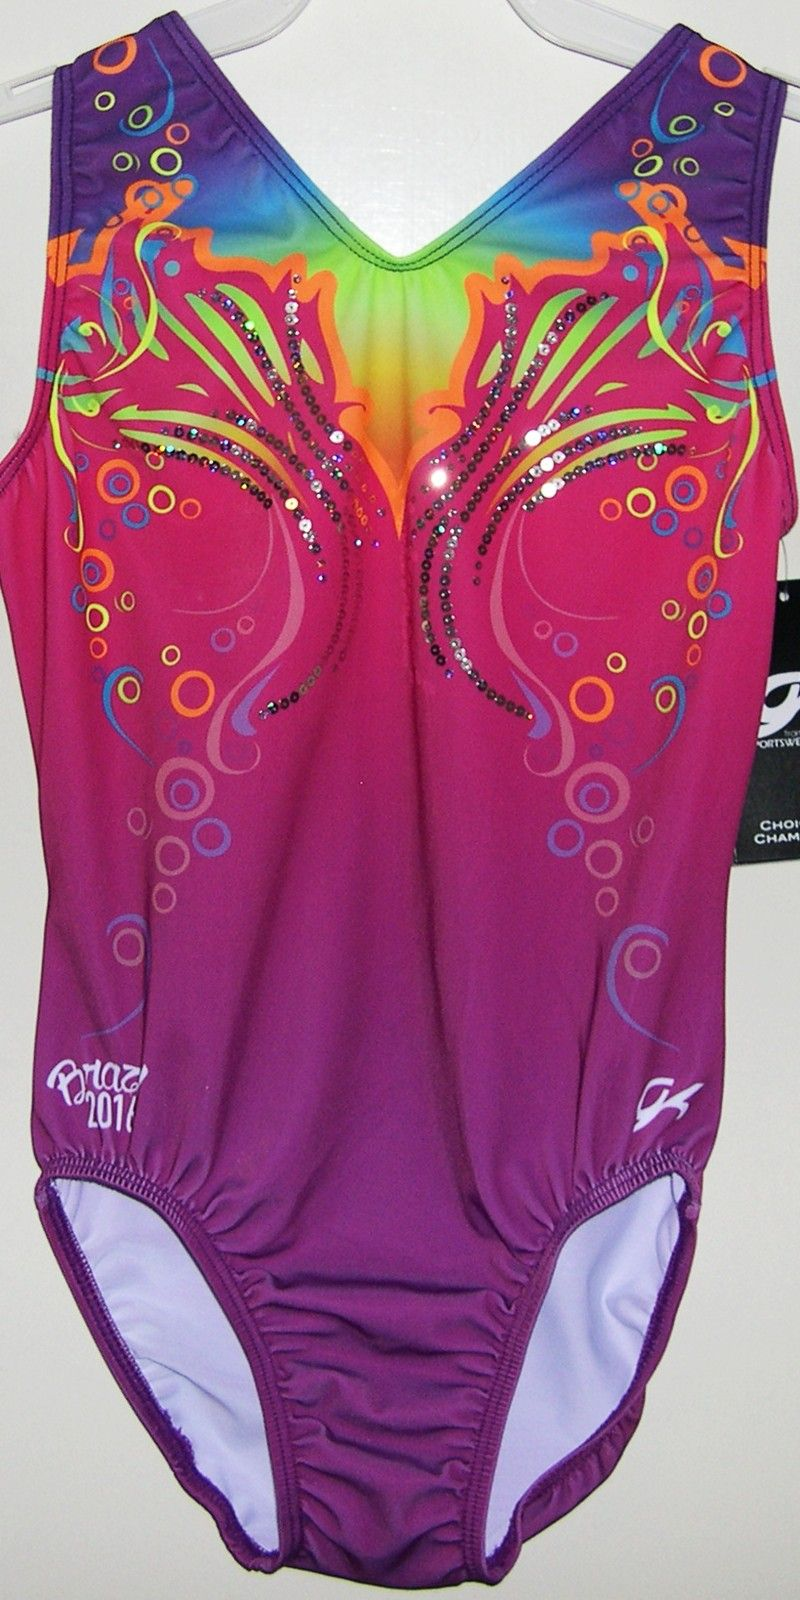 1978e521b Manufacturer  GK Elite Sportswear br  Size  AXS adult extra small ...